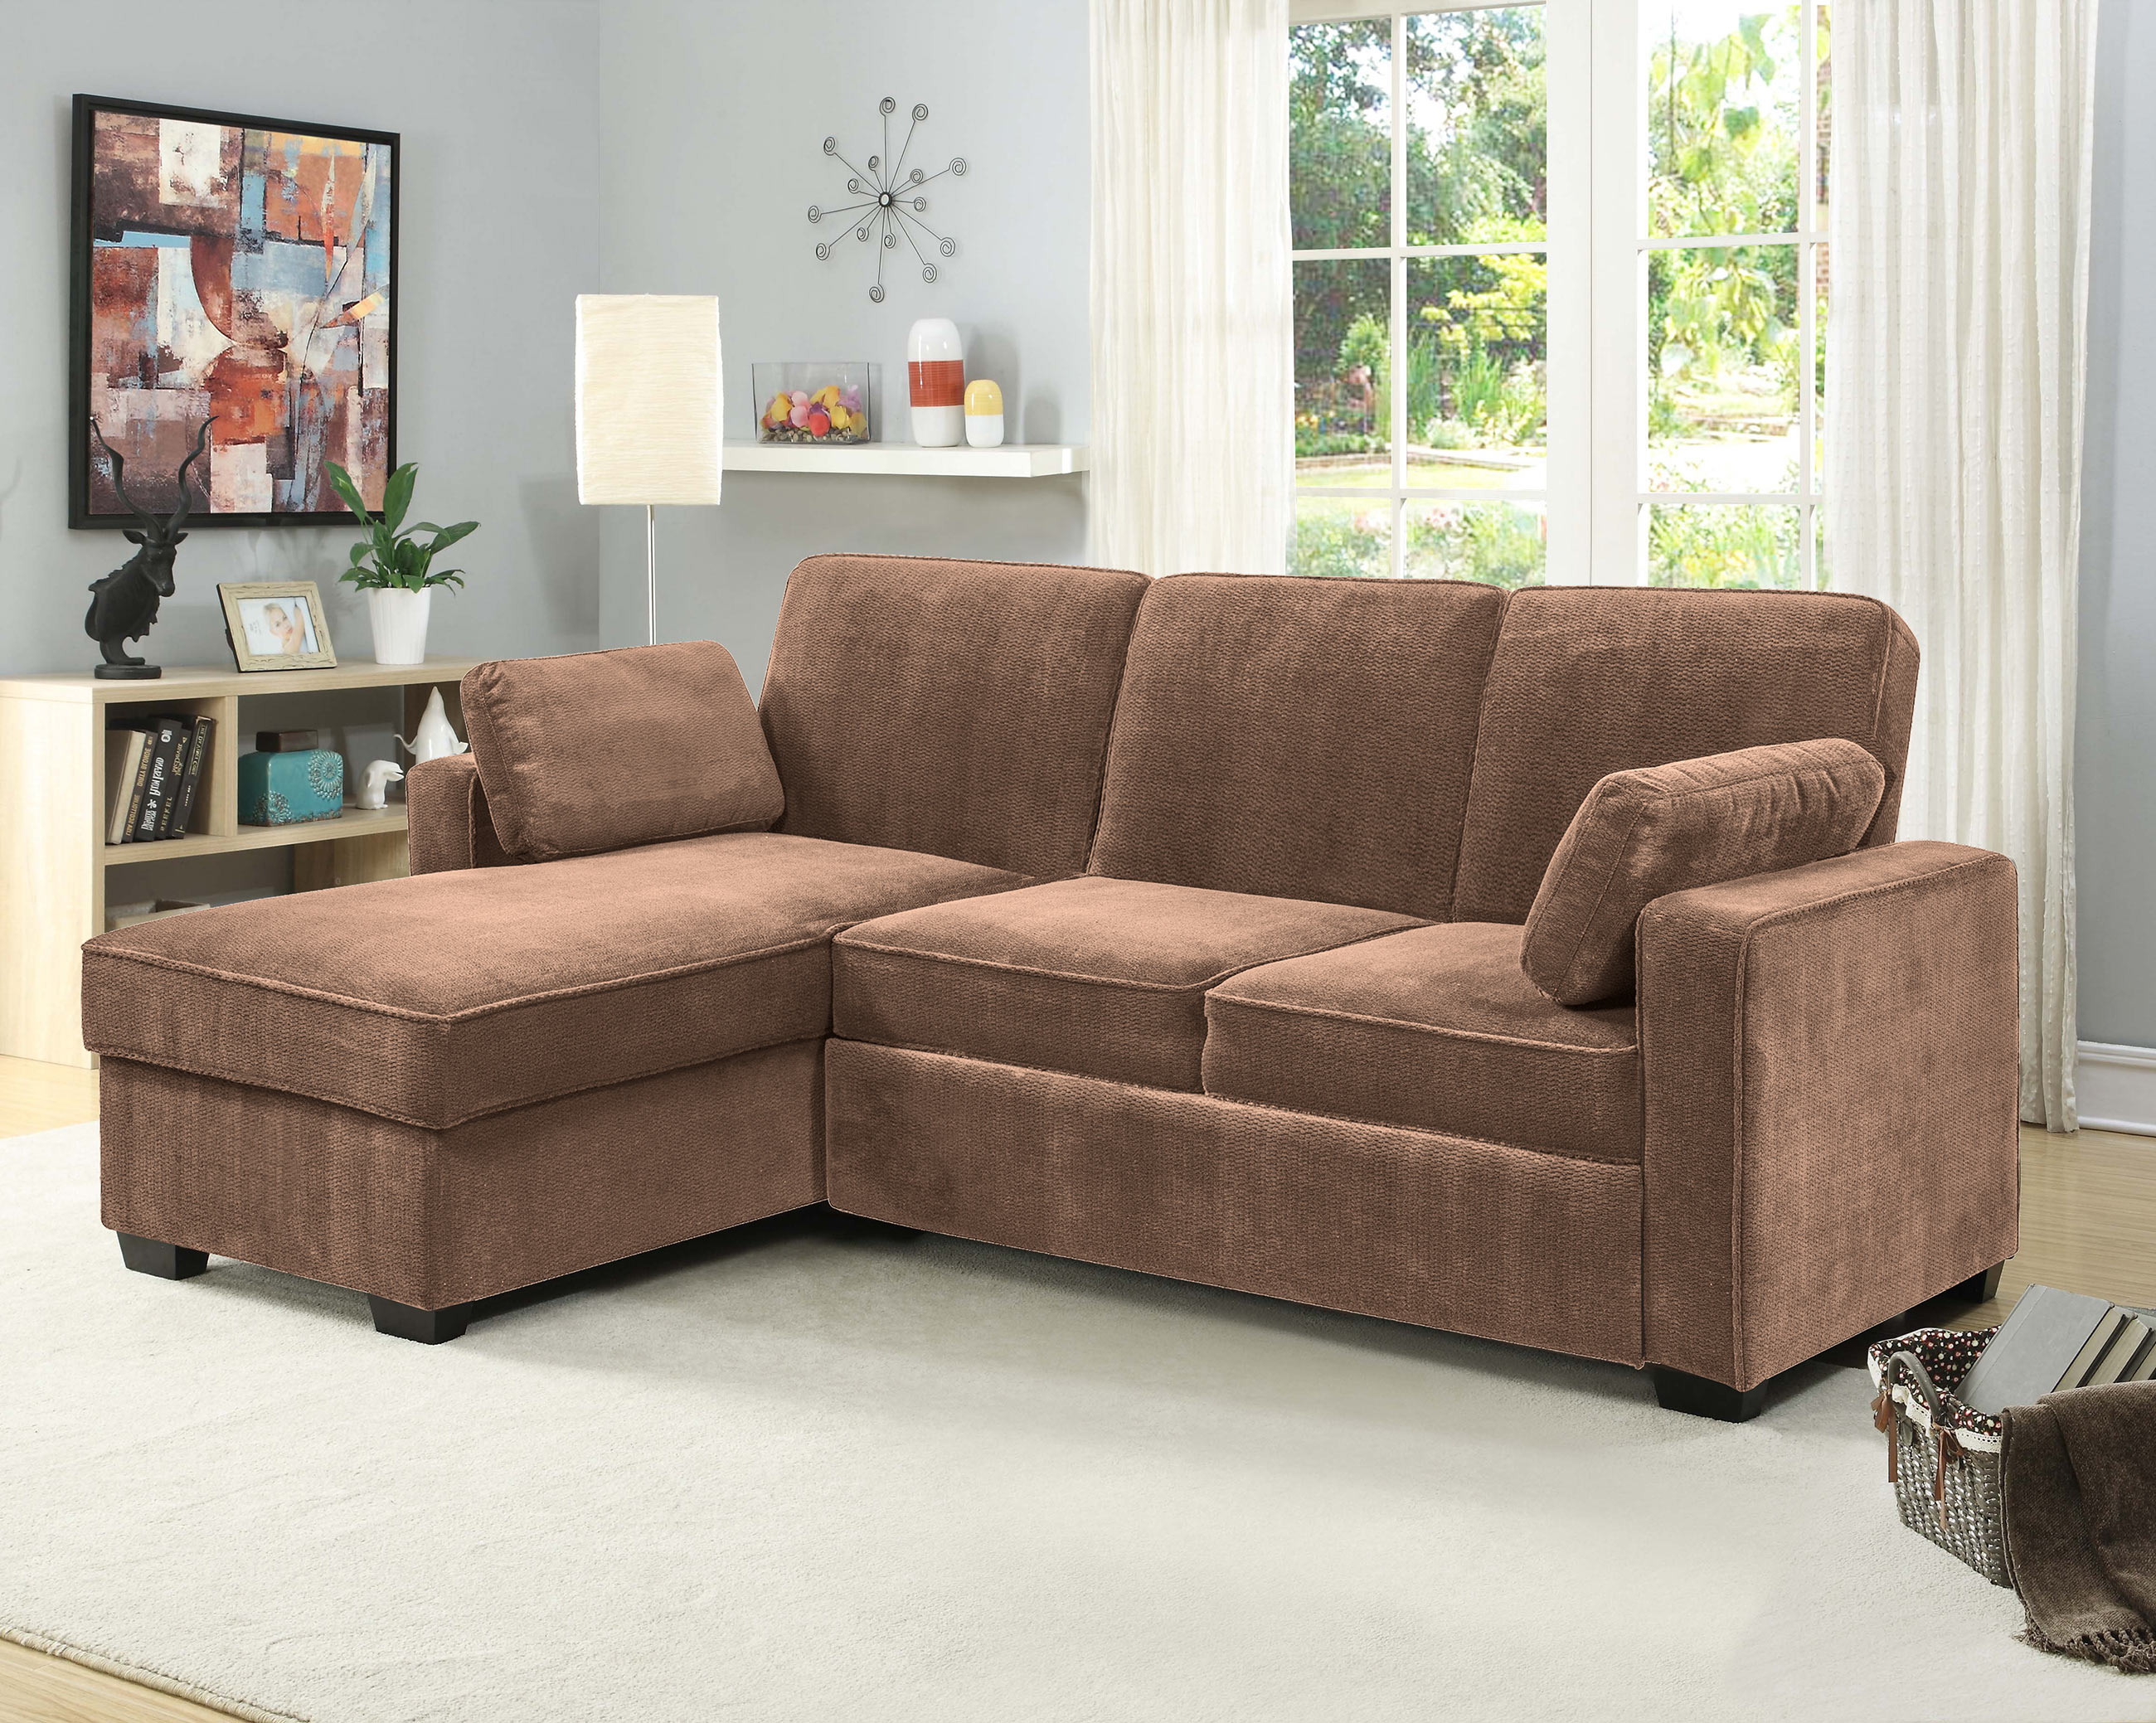 Chaela Sectional Convertible Sofa Light Brown by Serta